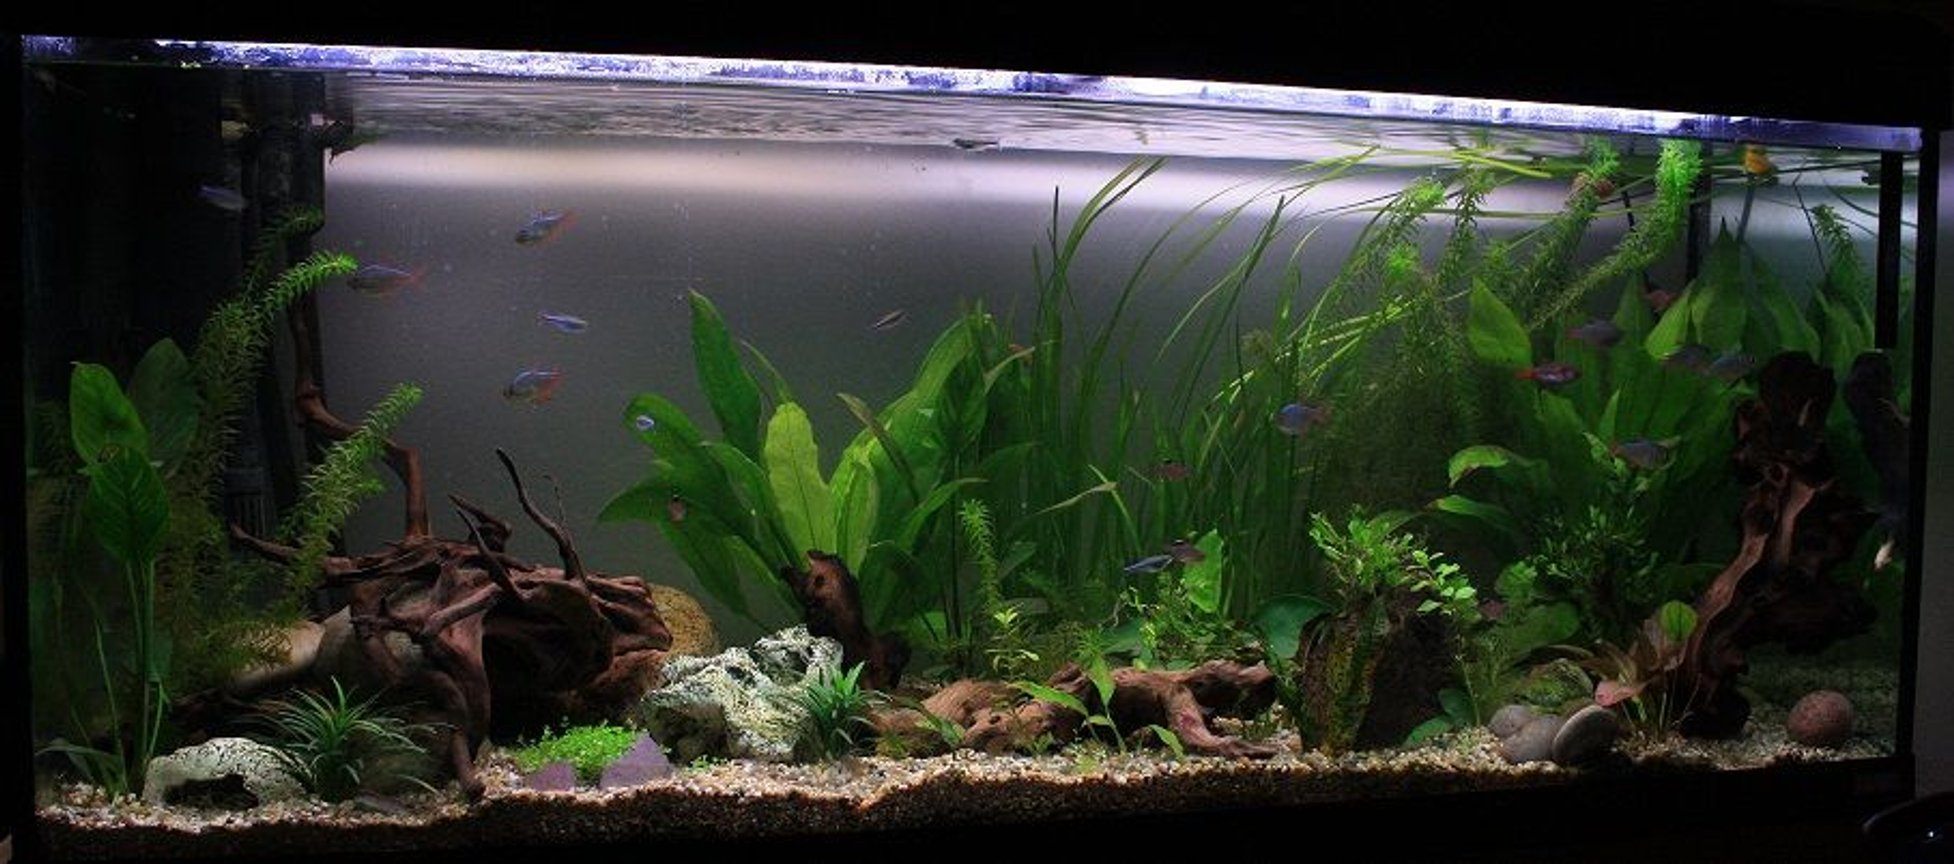 64 gallons planted tank (mostly live plants and fish) - Front side view